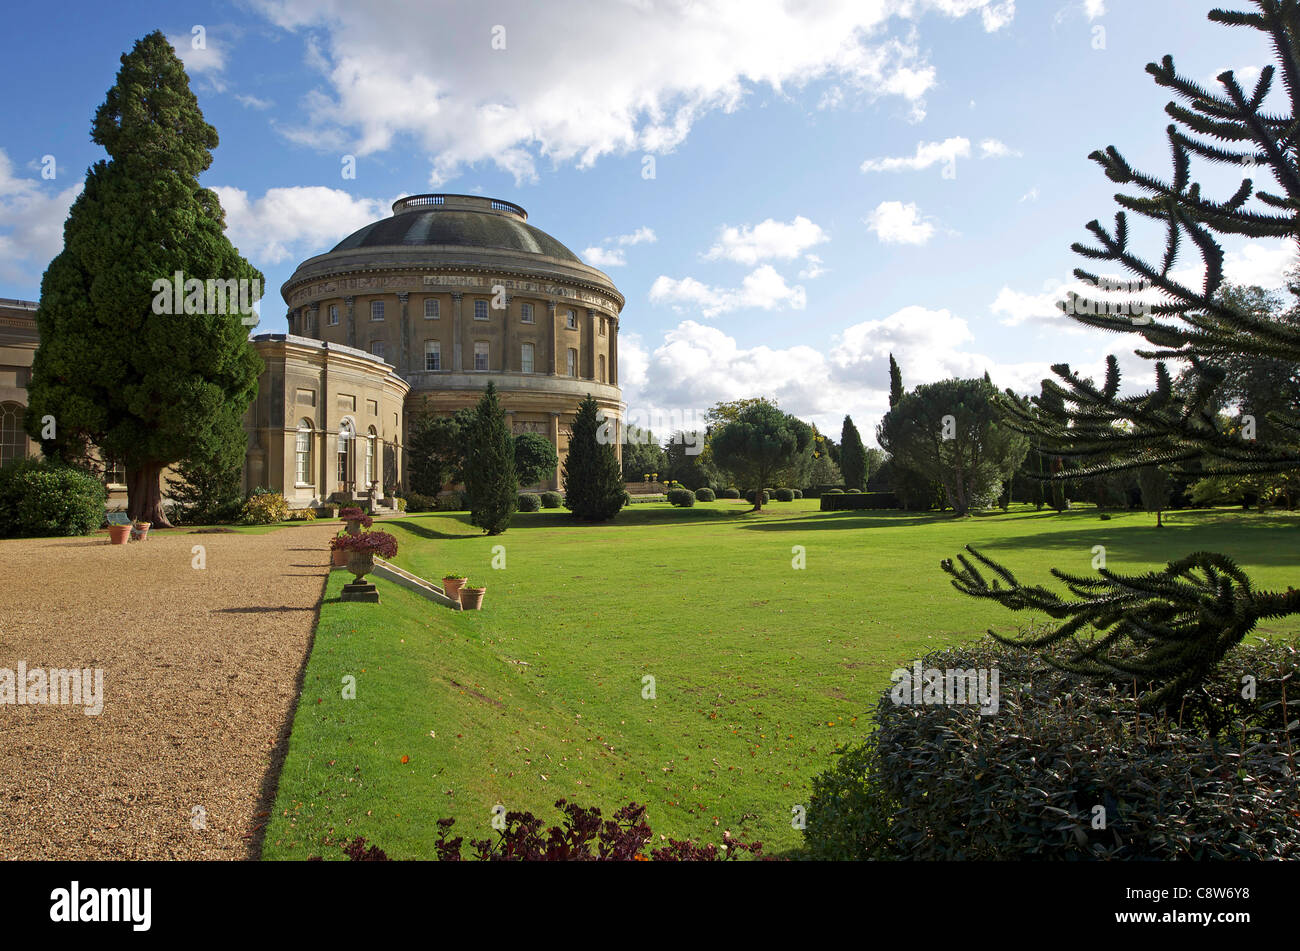 Ickworth House from The Italianate Gardens - Stock Image